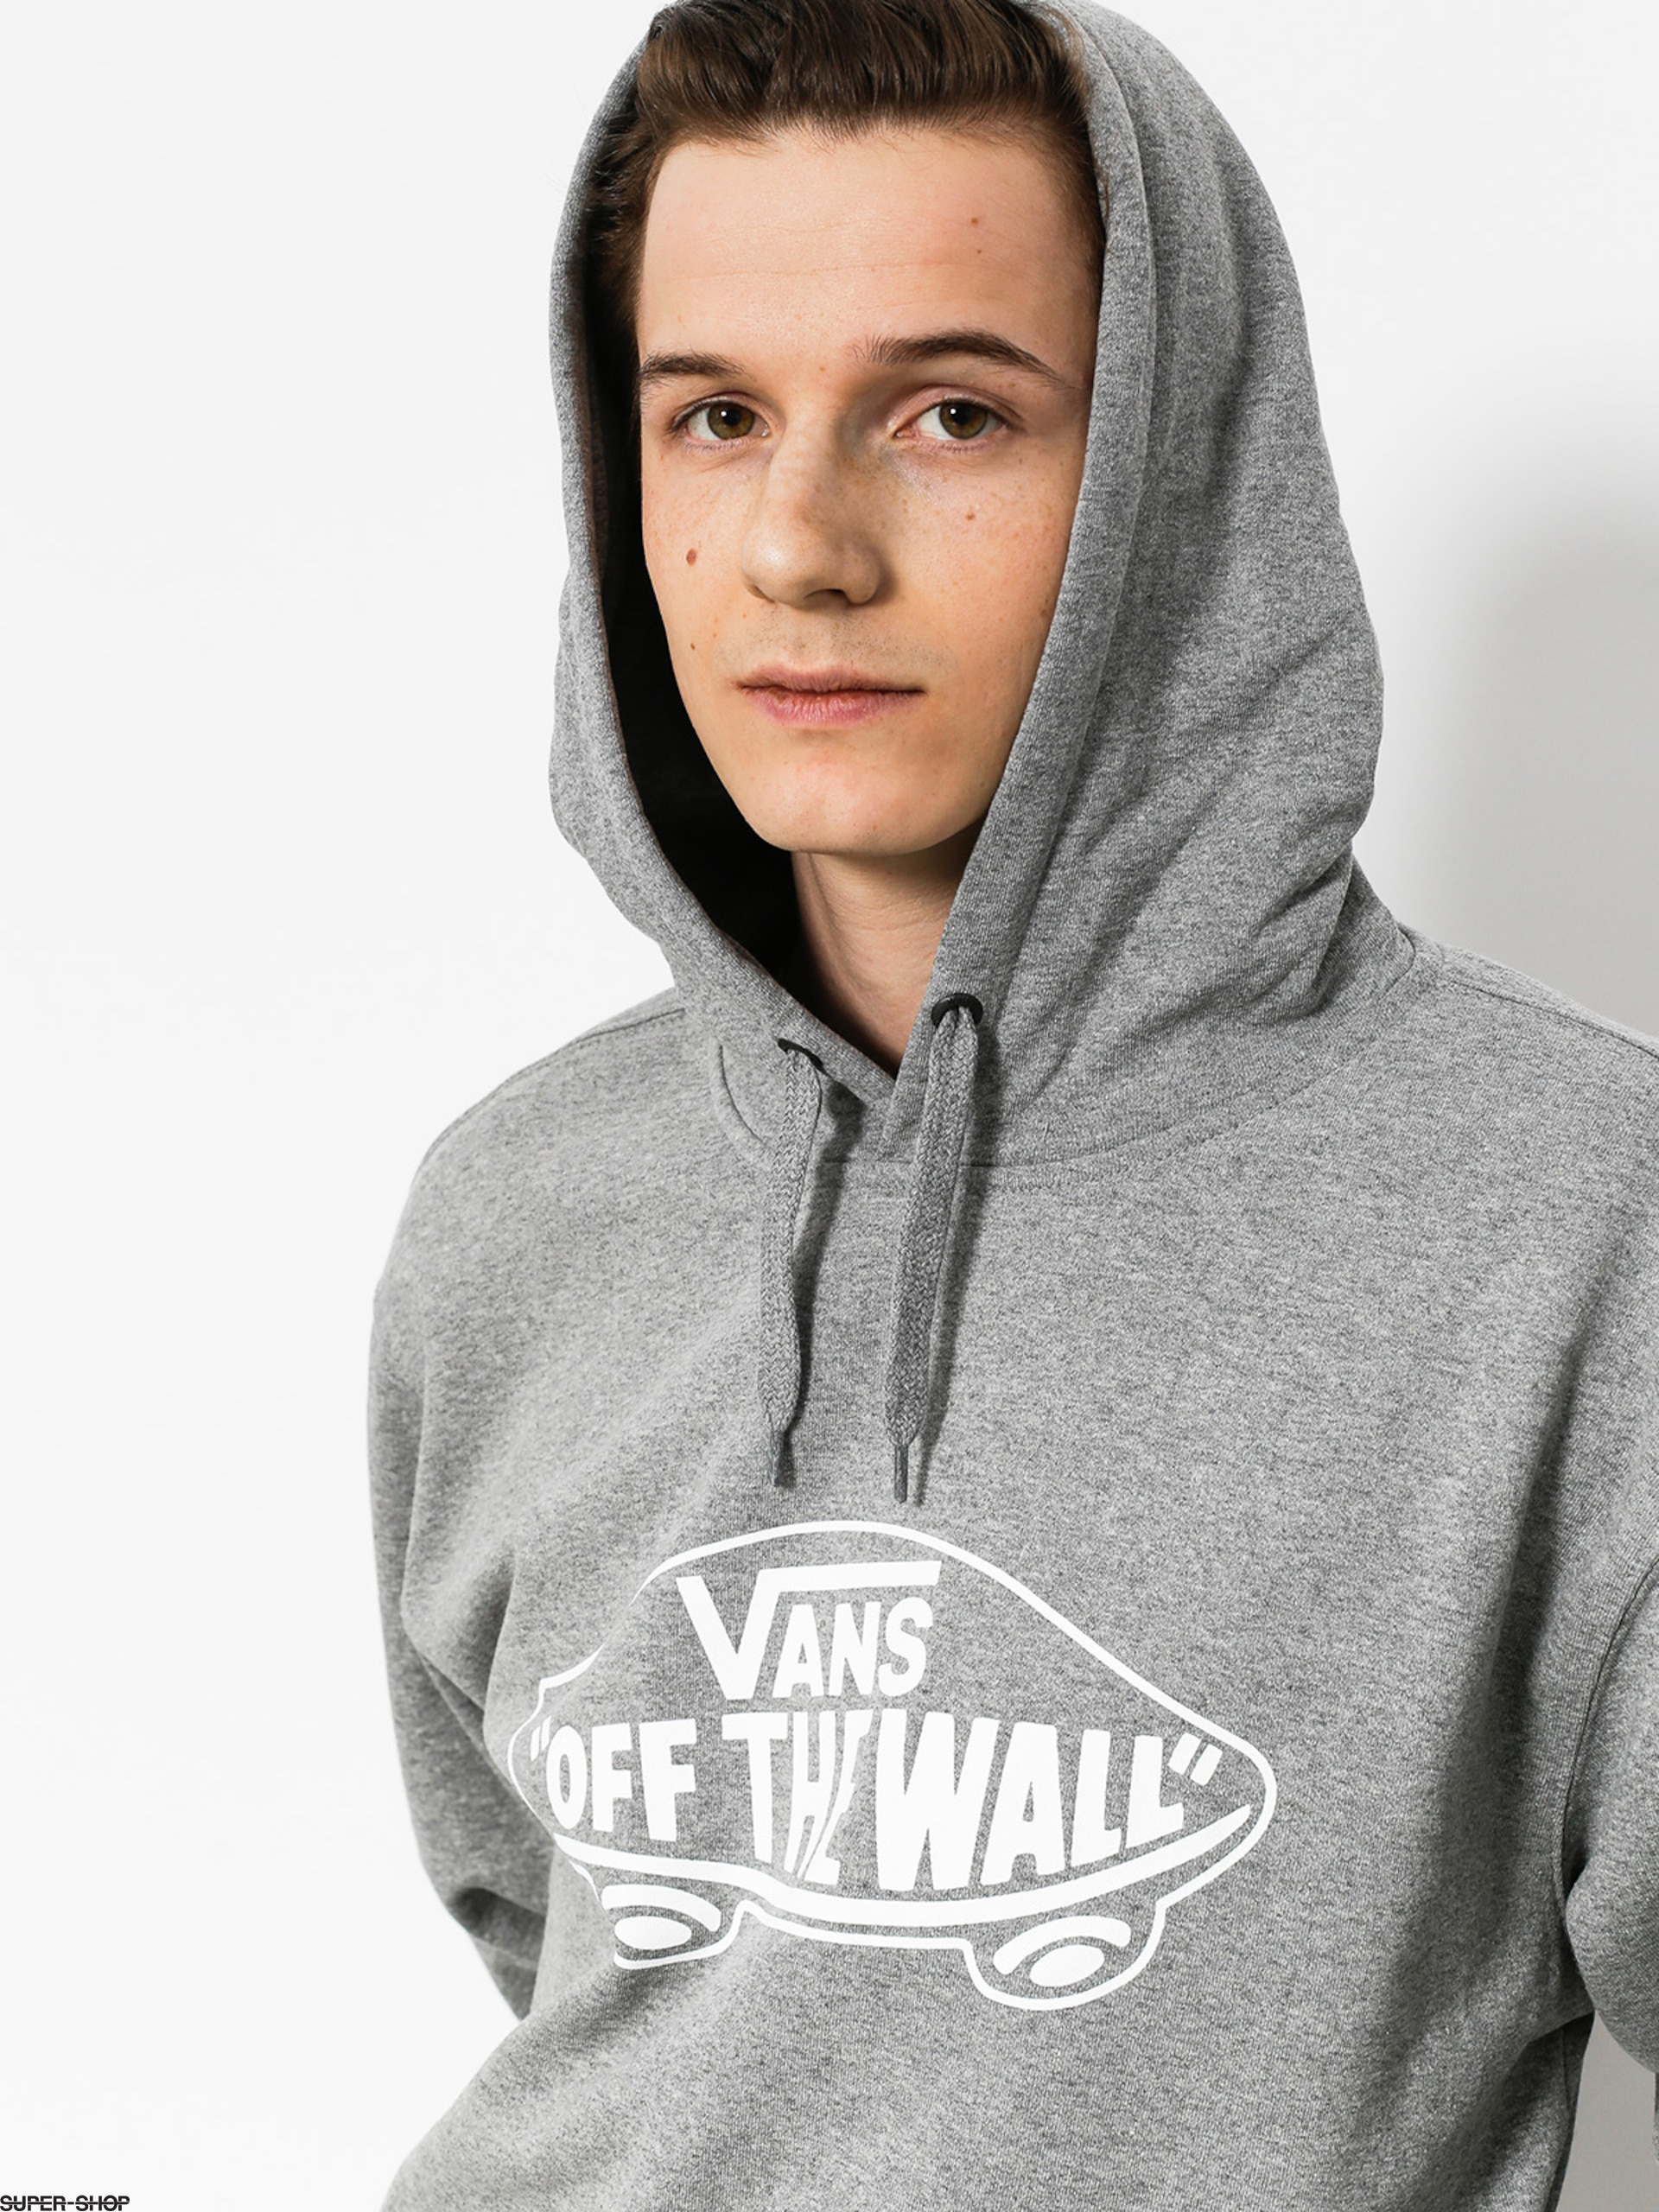 dd48ea4086c85e Vans Hoodie Otw HD (cement heather white outline)